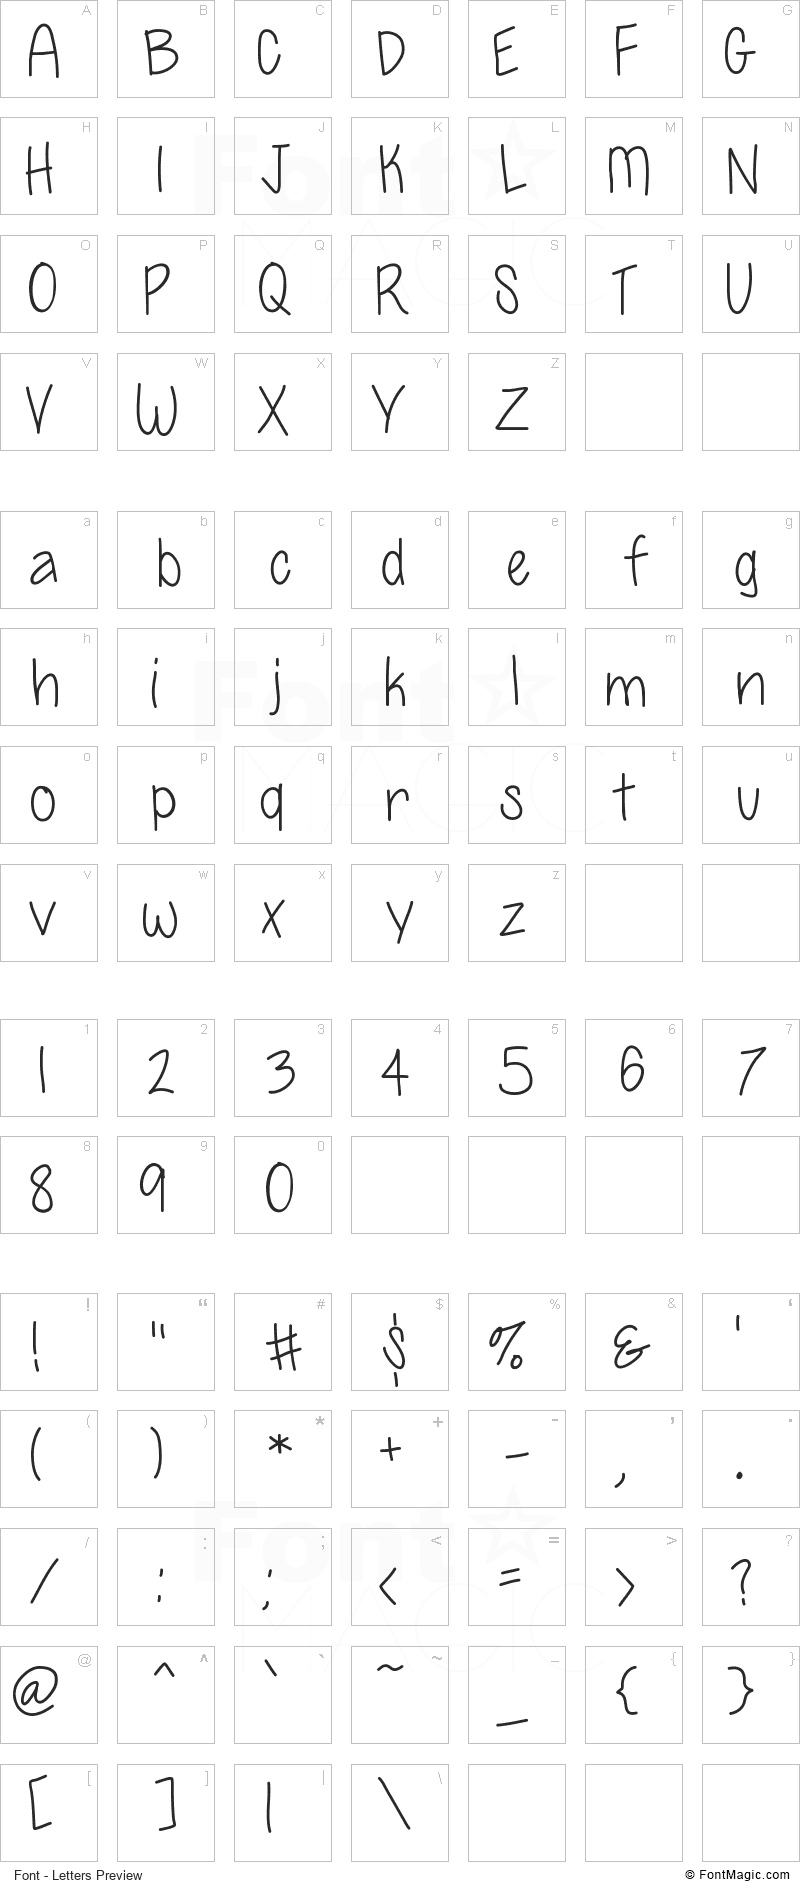 So Posh Font - All Latters Preview Chart